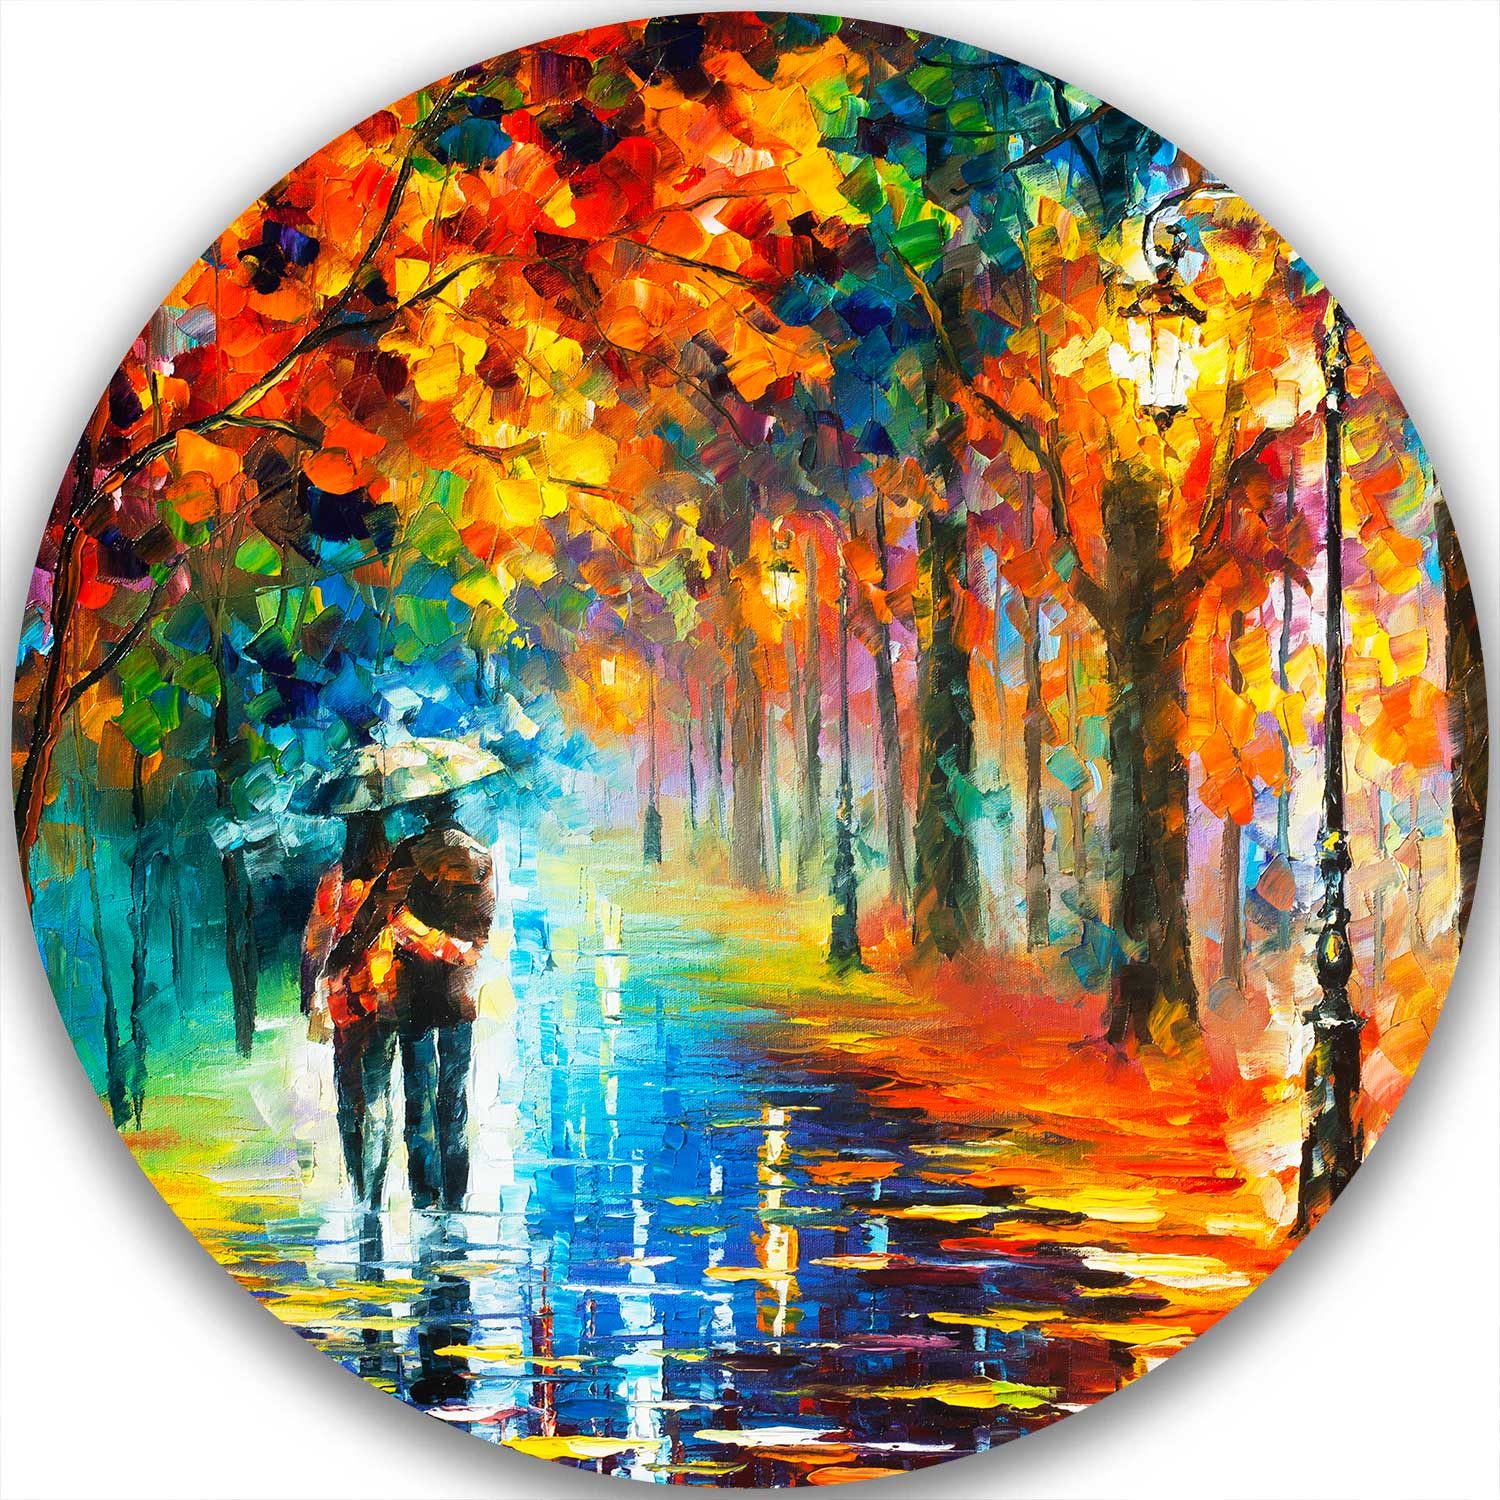 AUTUMN HUGS - LIMITED EDITION CIRCLE GICLEE